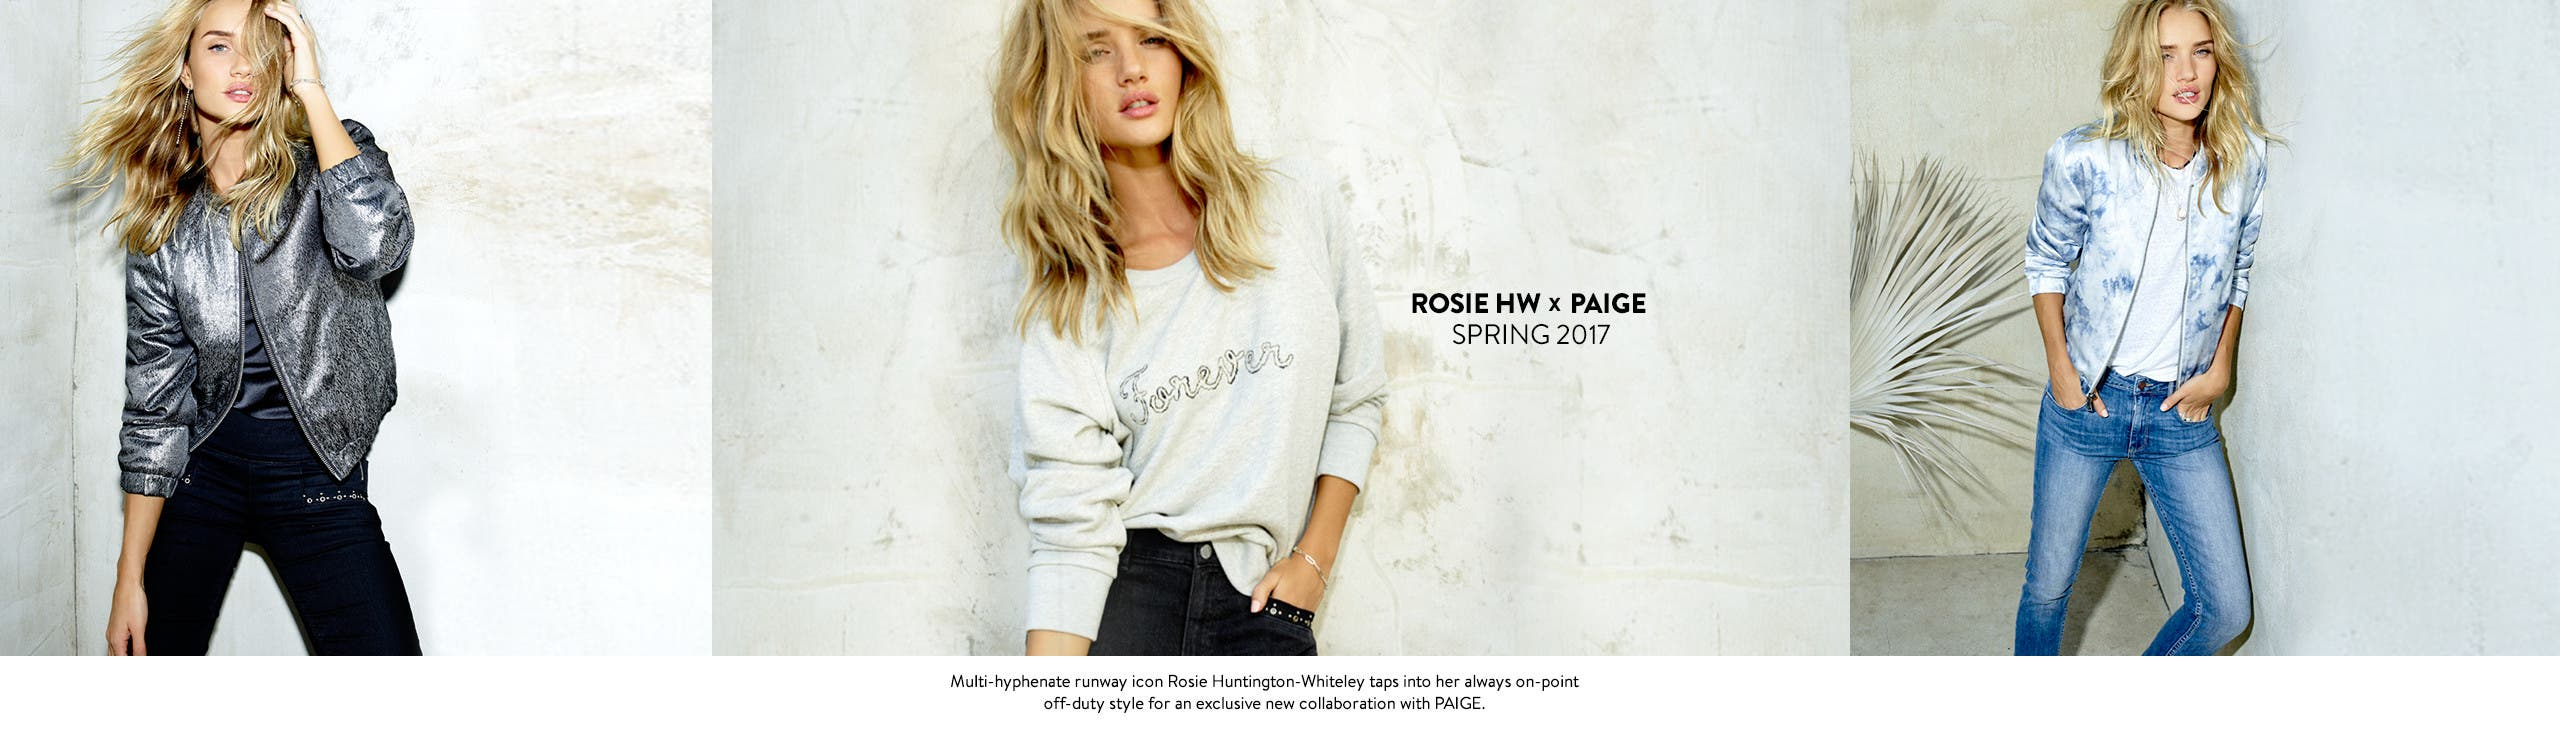 Rosie Huntington-Whiteley x PAIGE denim capsule collection.